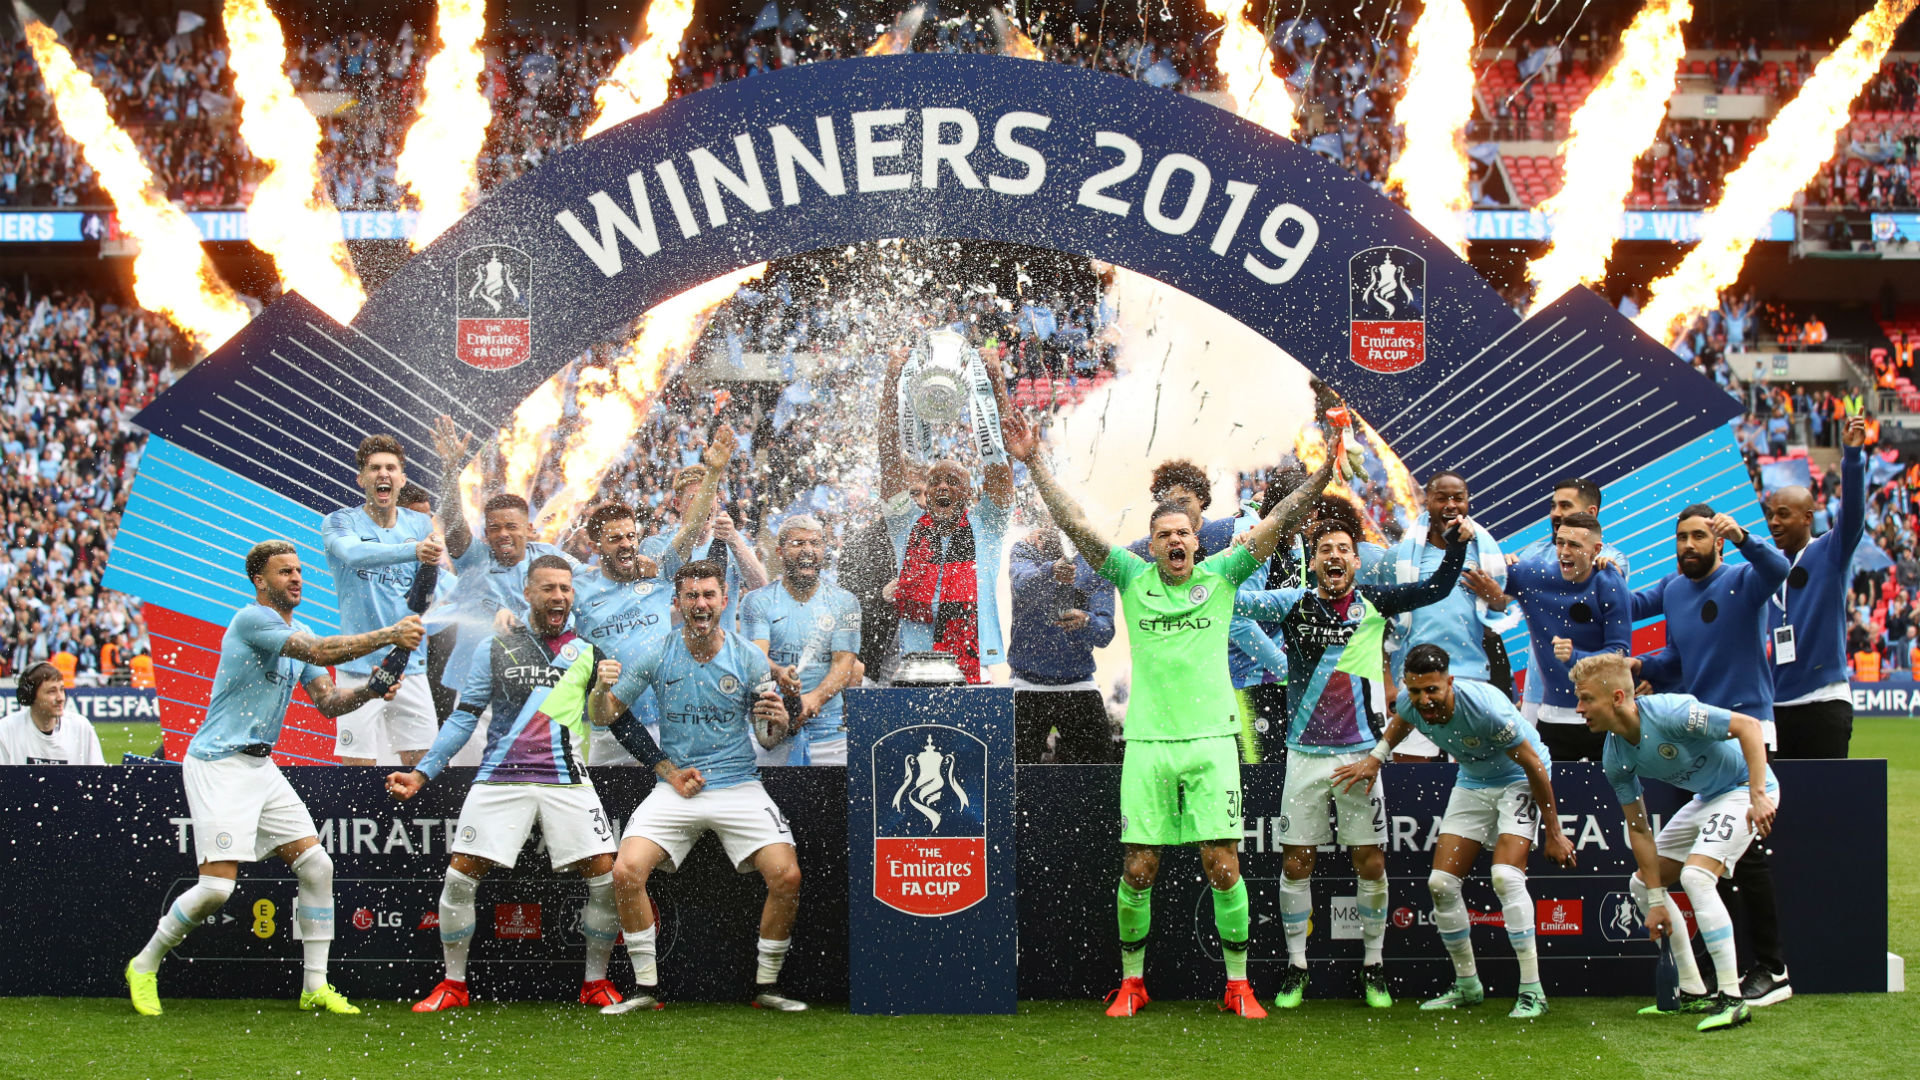 FA Cup final pencilled in for 1 August